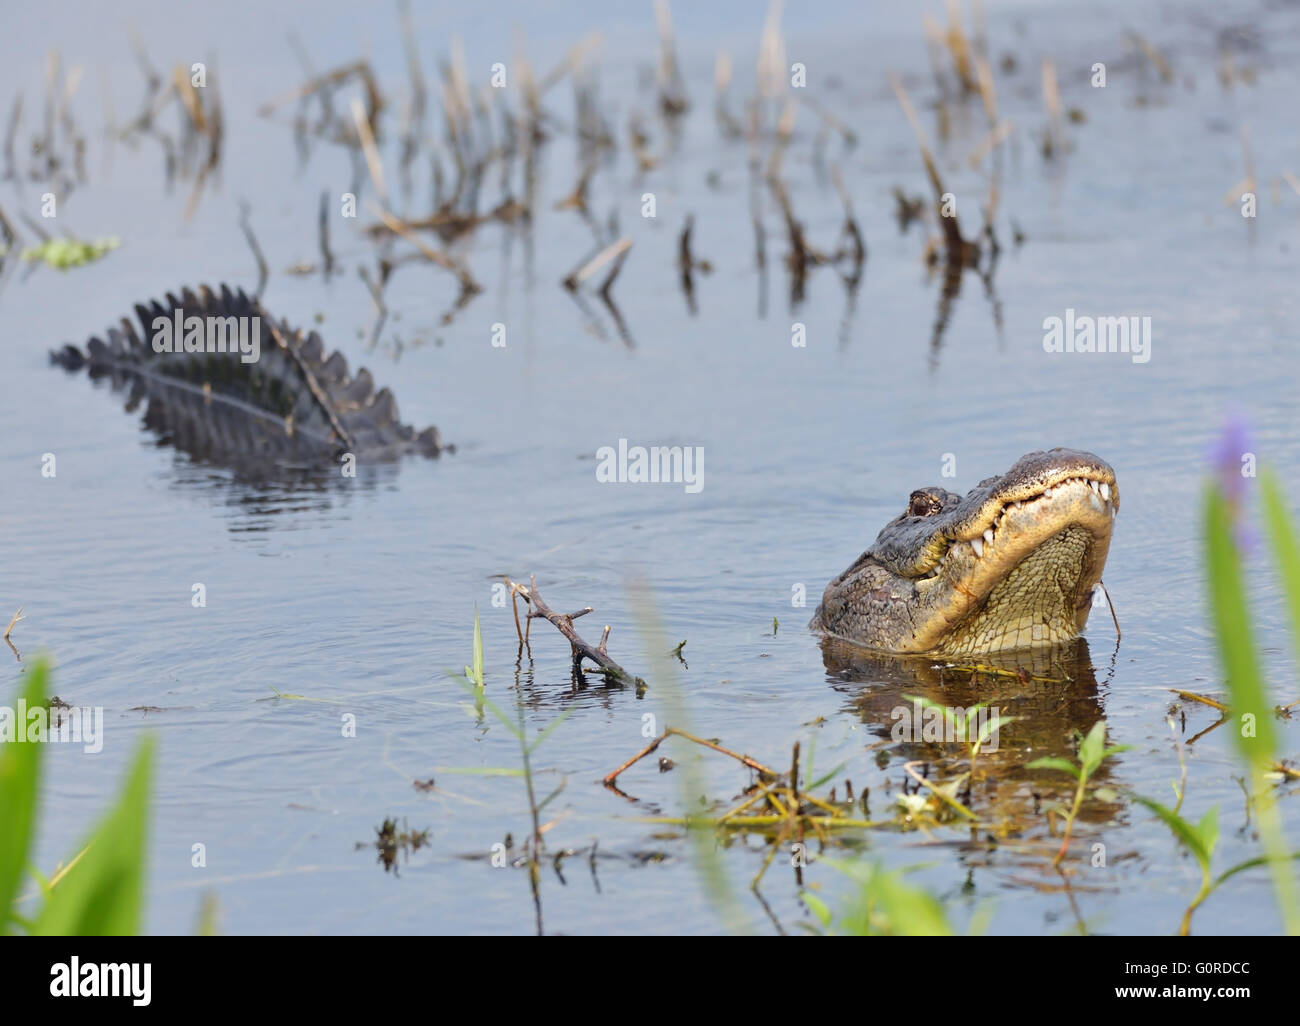 Large Bull Male Alligator Calls for a Mate - Stock Image